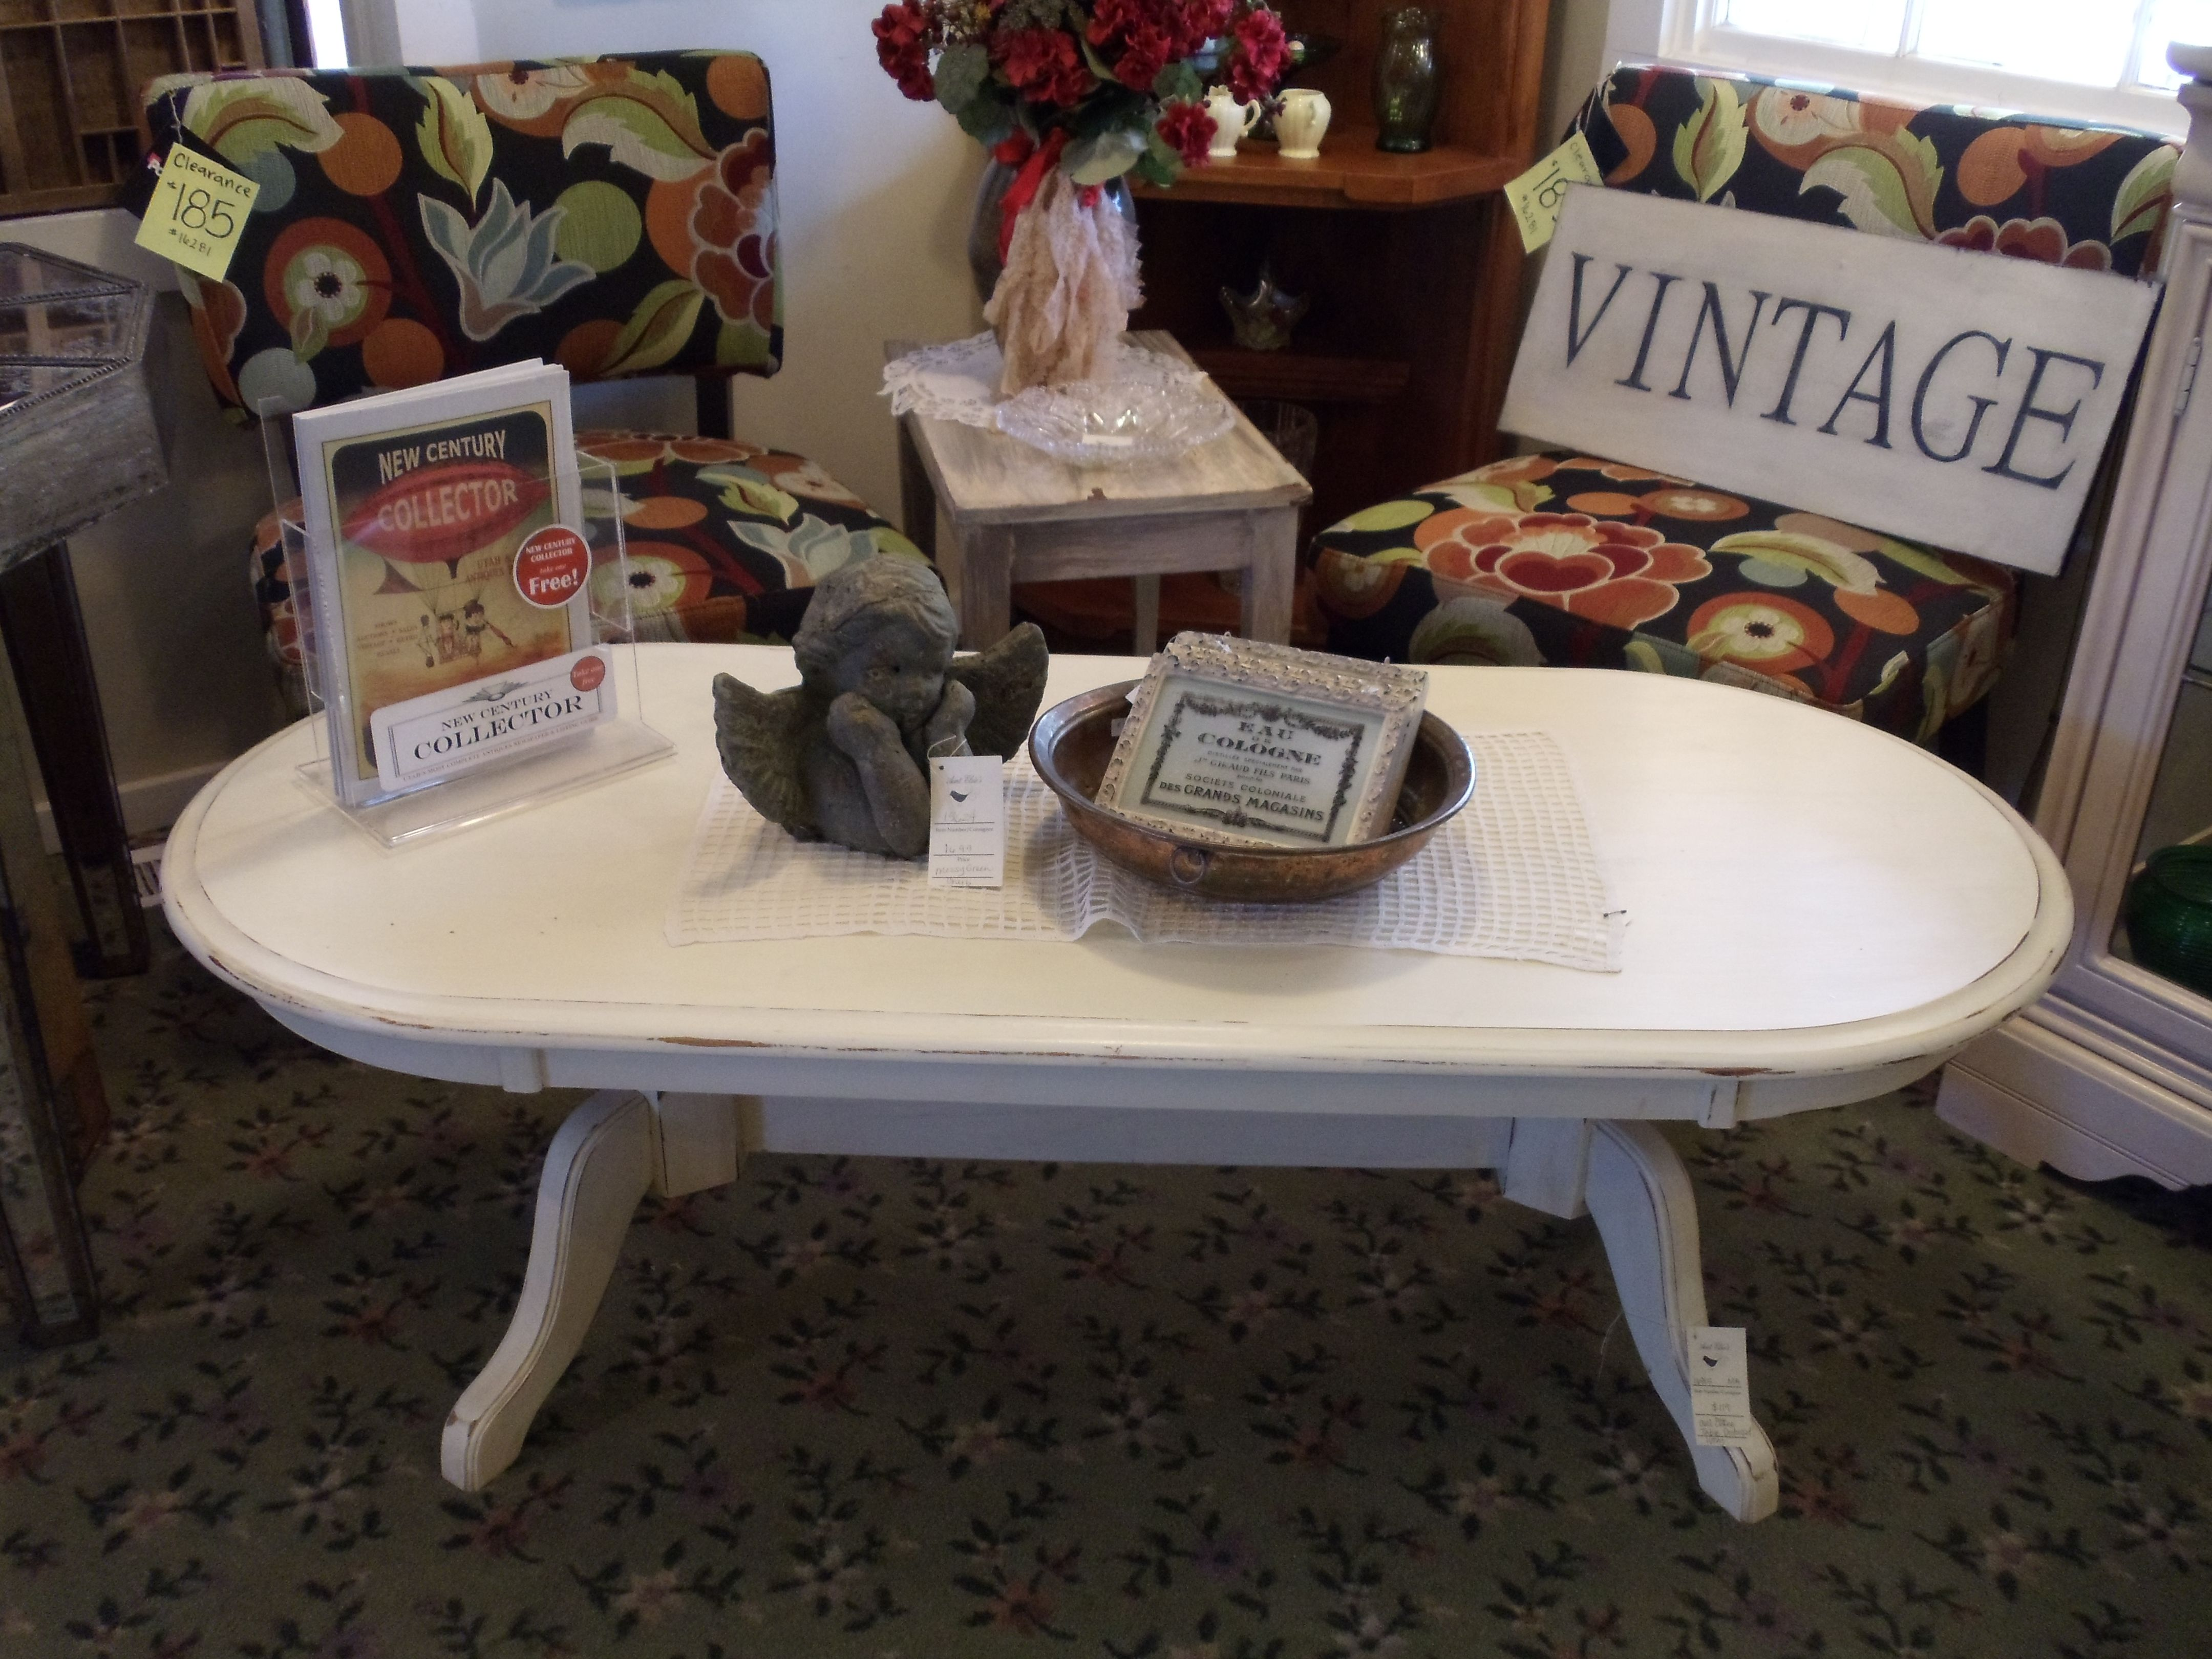 Refinished cream oval coffee table diy pinterest oval coffee refinished cream oval coffee table geotapseo Image collections